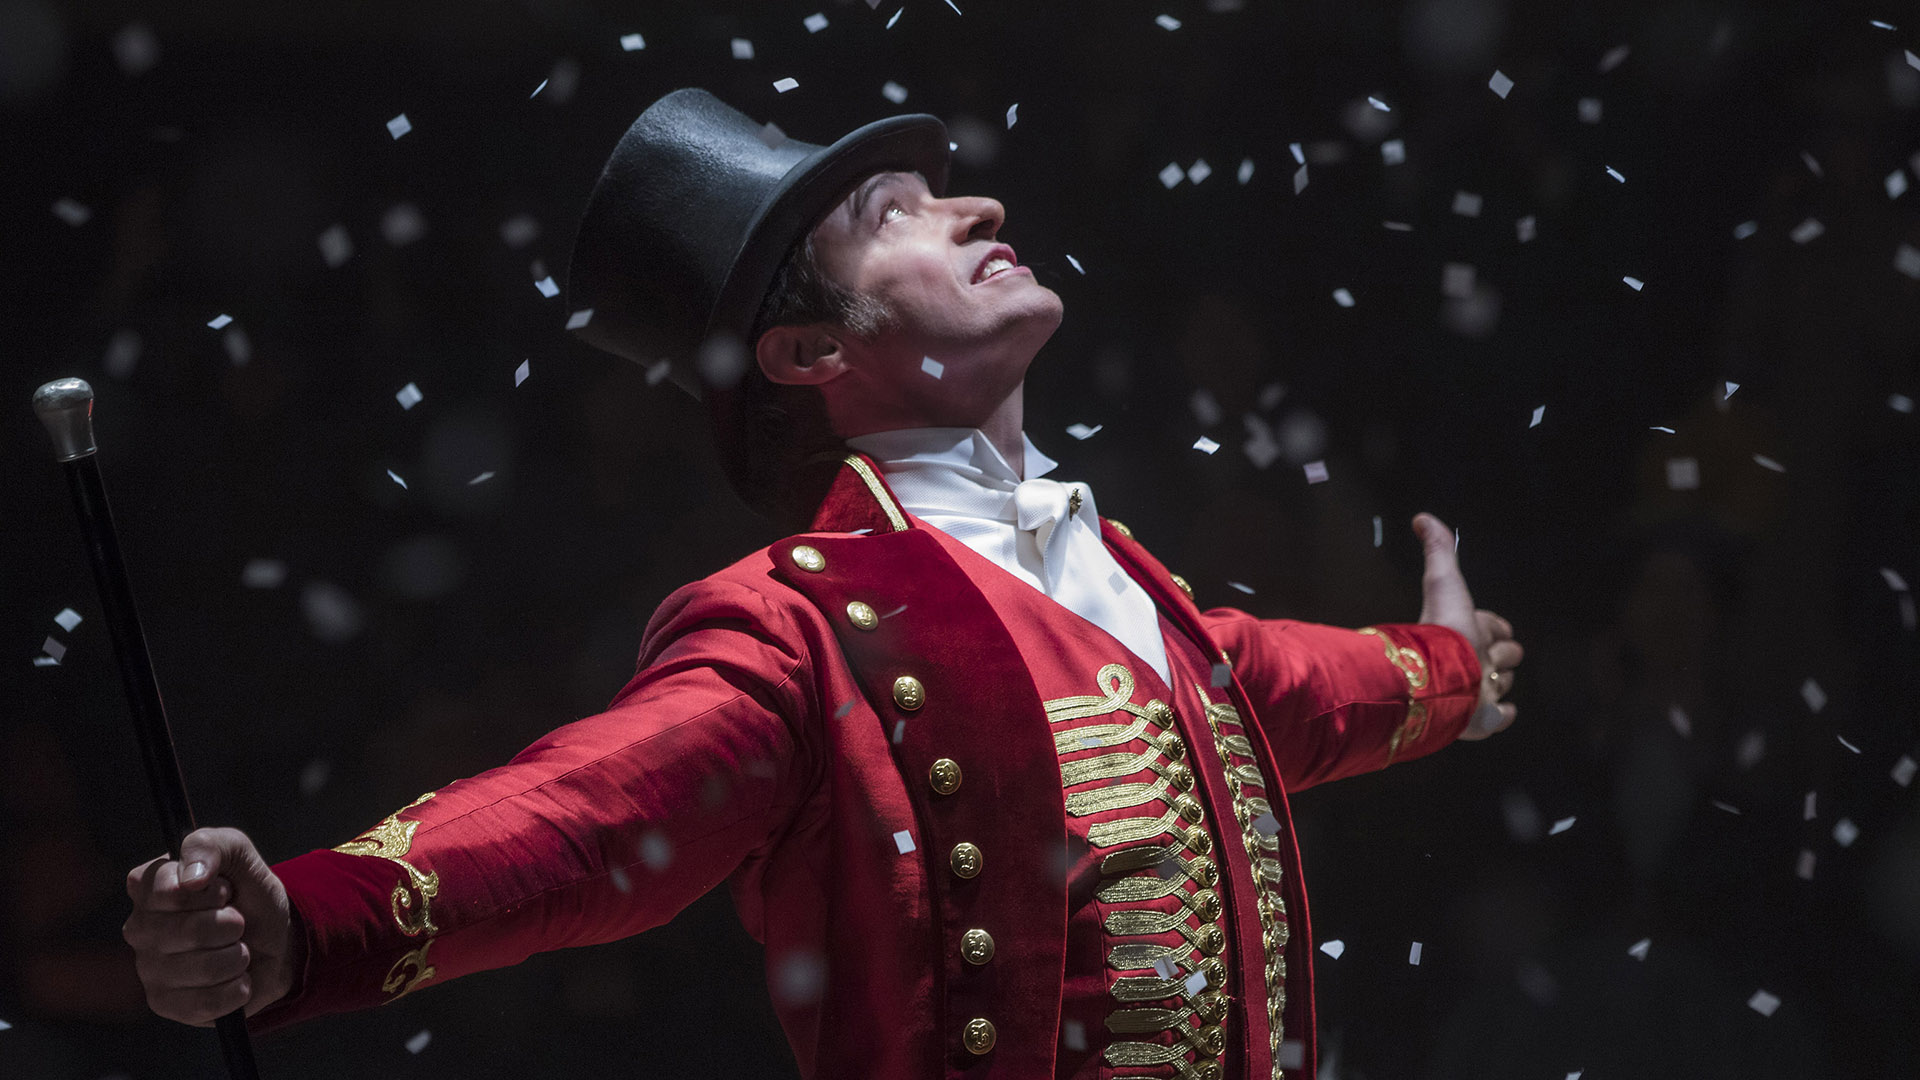 Movie reviews: 'The Greatest Showman,' 'Jumanji: Welcome to the Jungle,' 'Downsizing'